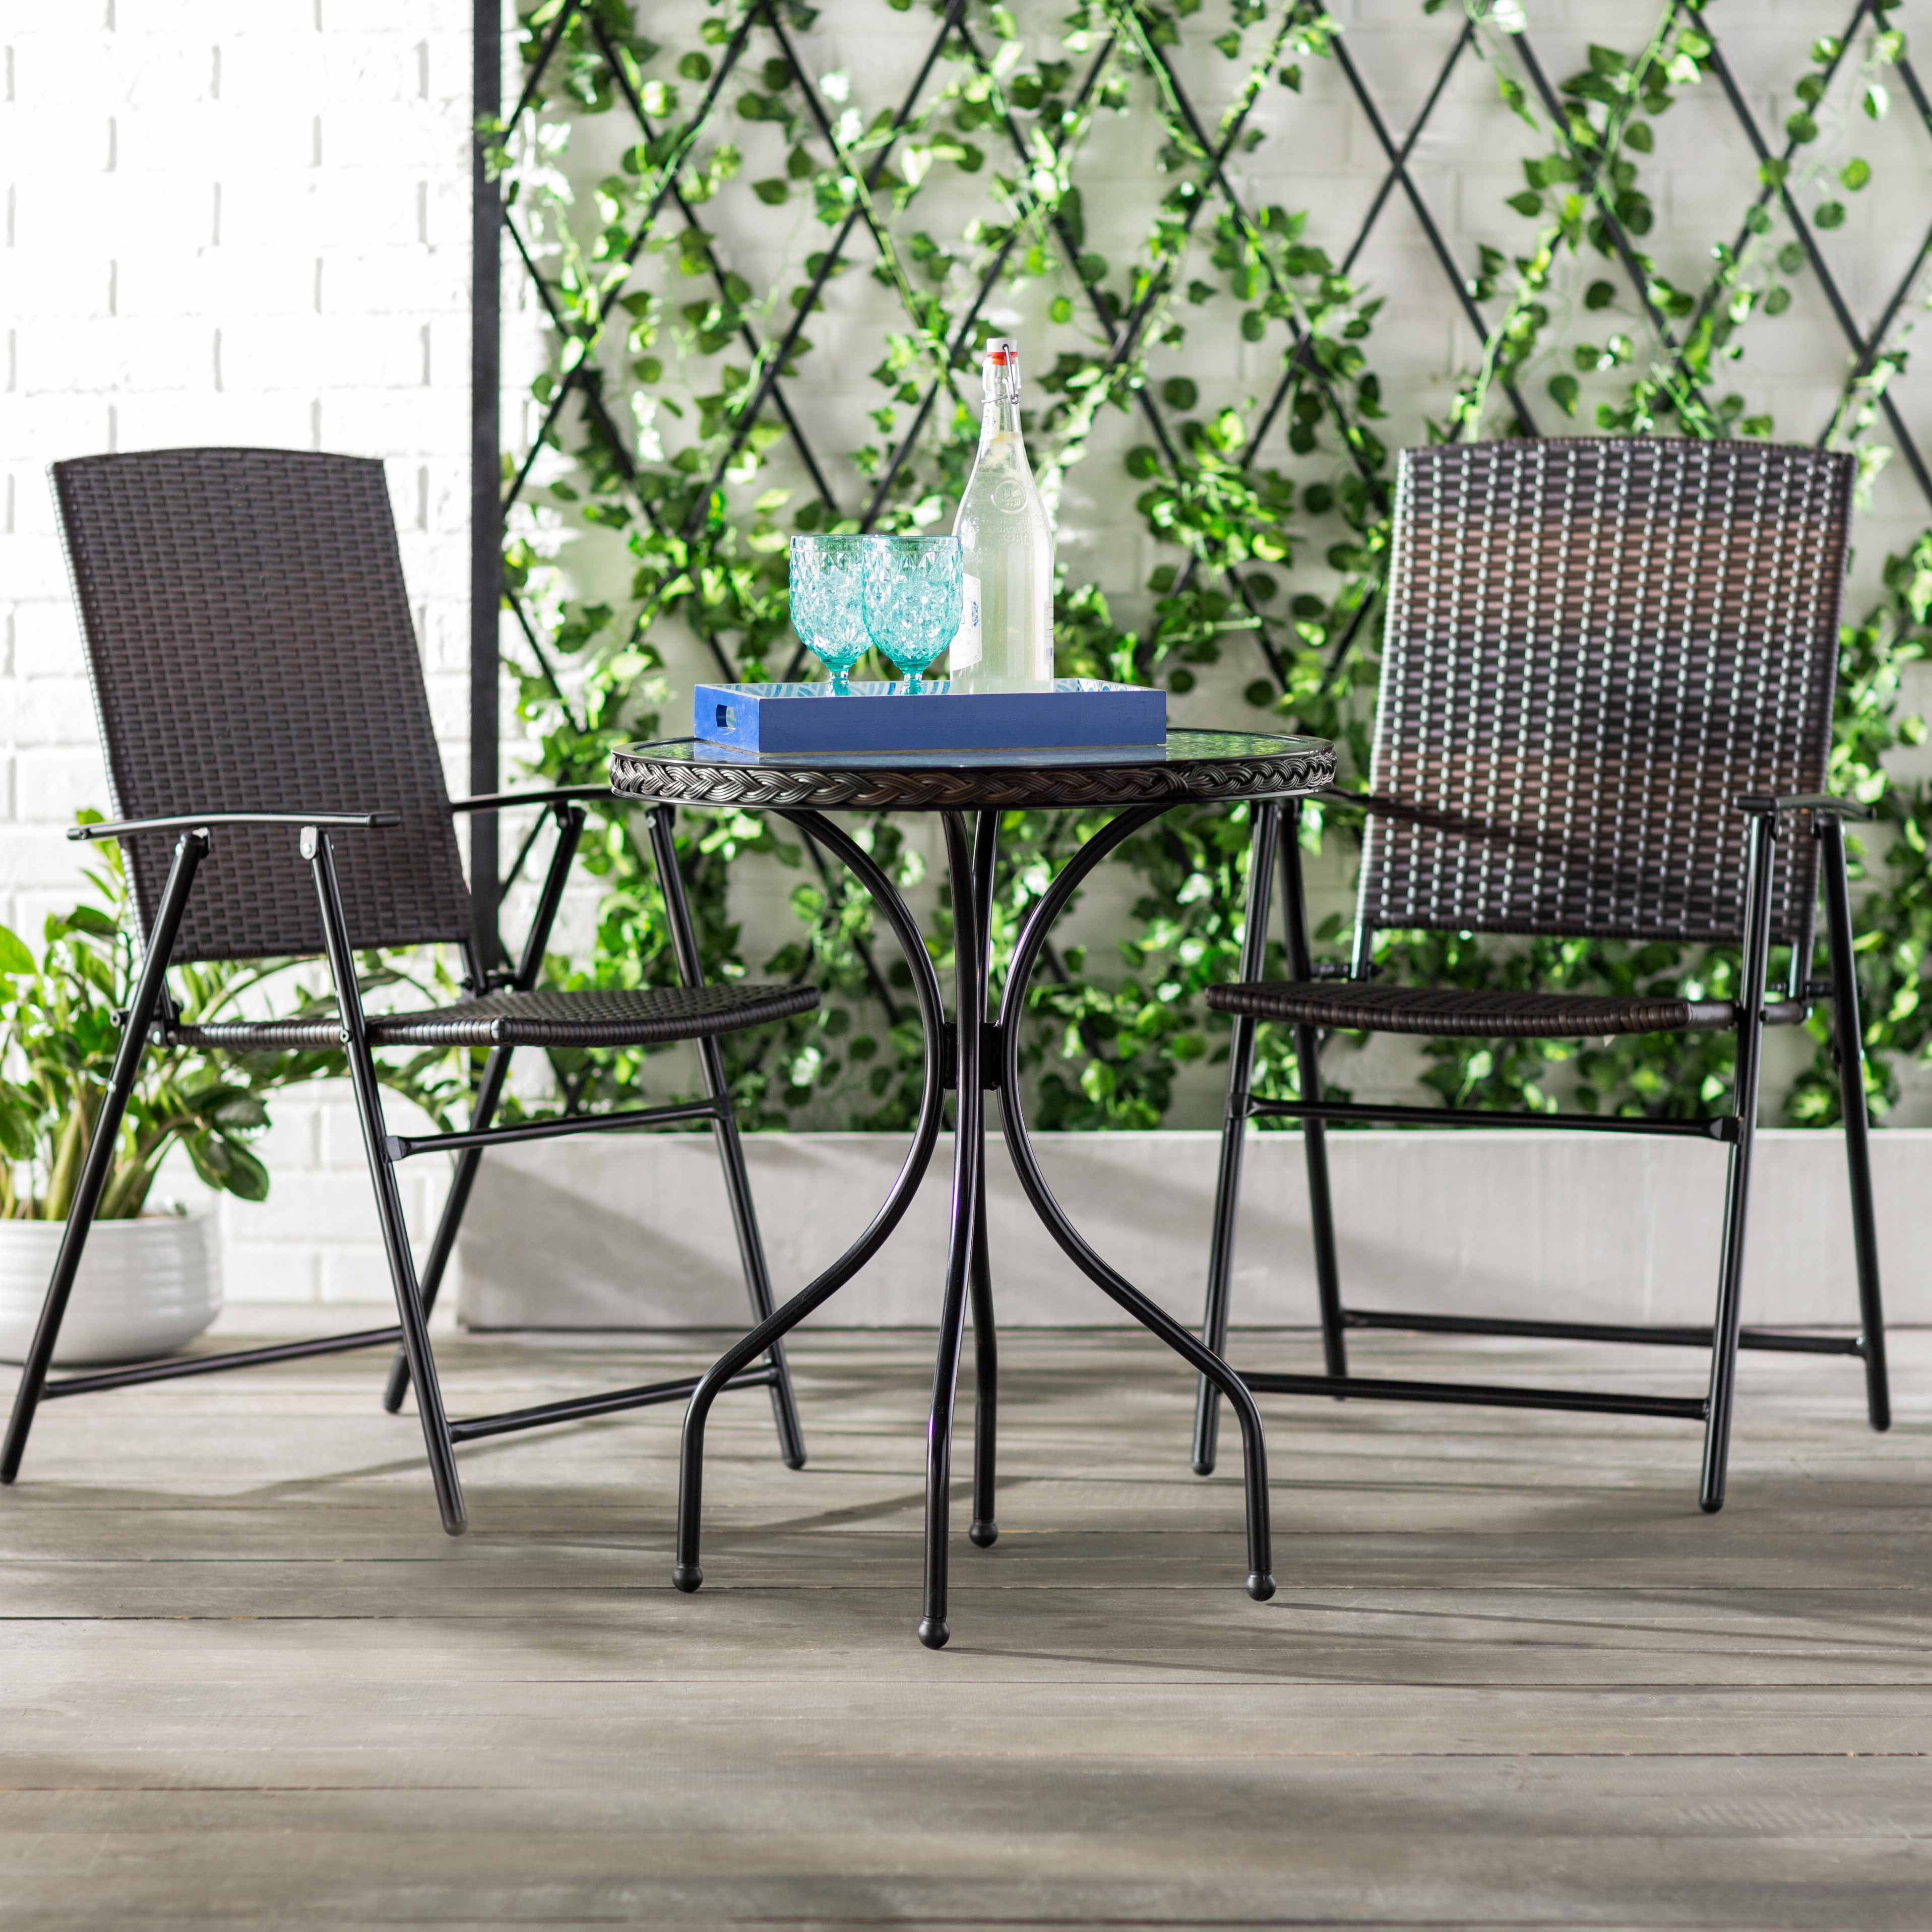 3 Piece Patio Lounger Sets Throughout Widely Used Gretchen Patio Wicker 3 Piece Bistro Set (View 20 of 25)